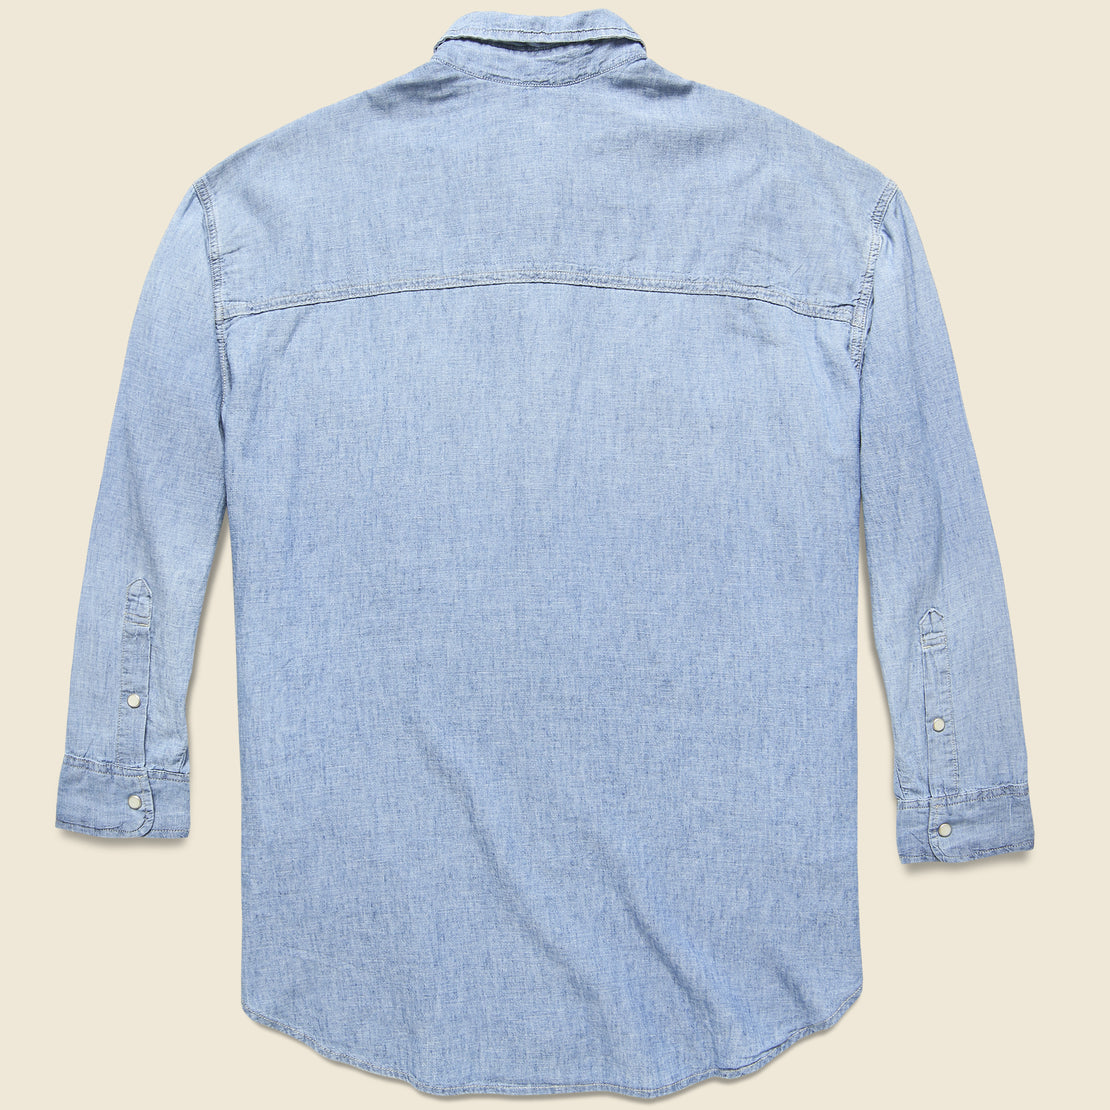 Cotton/Linen Shirt - Crystal Ball